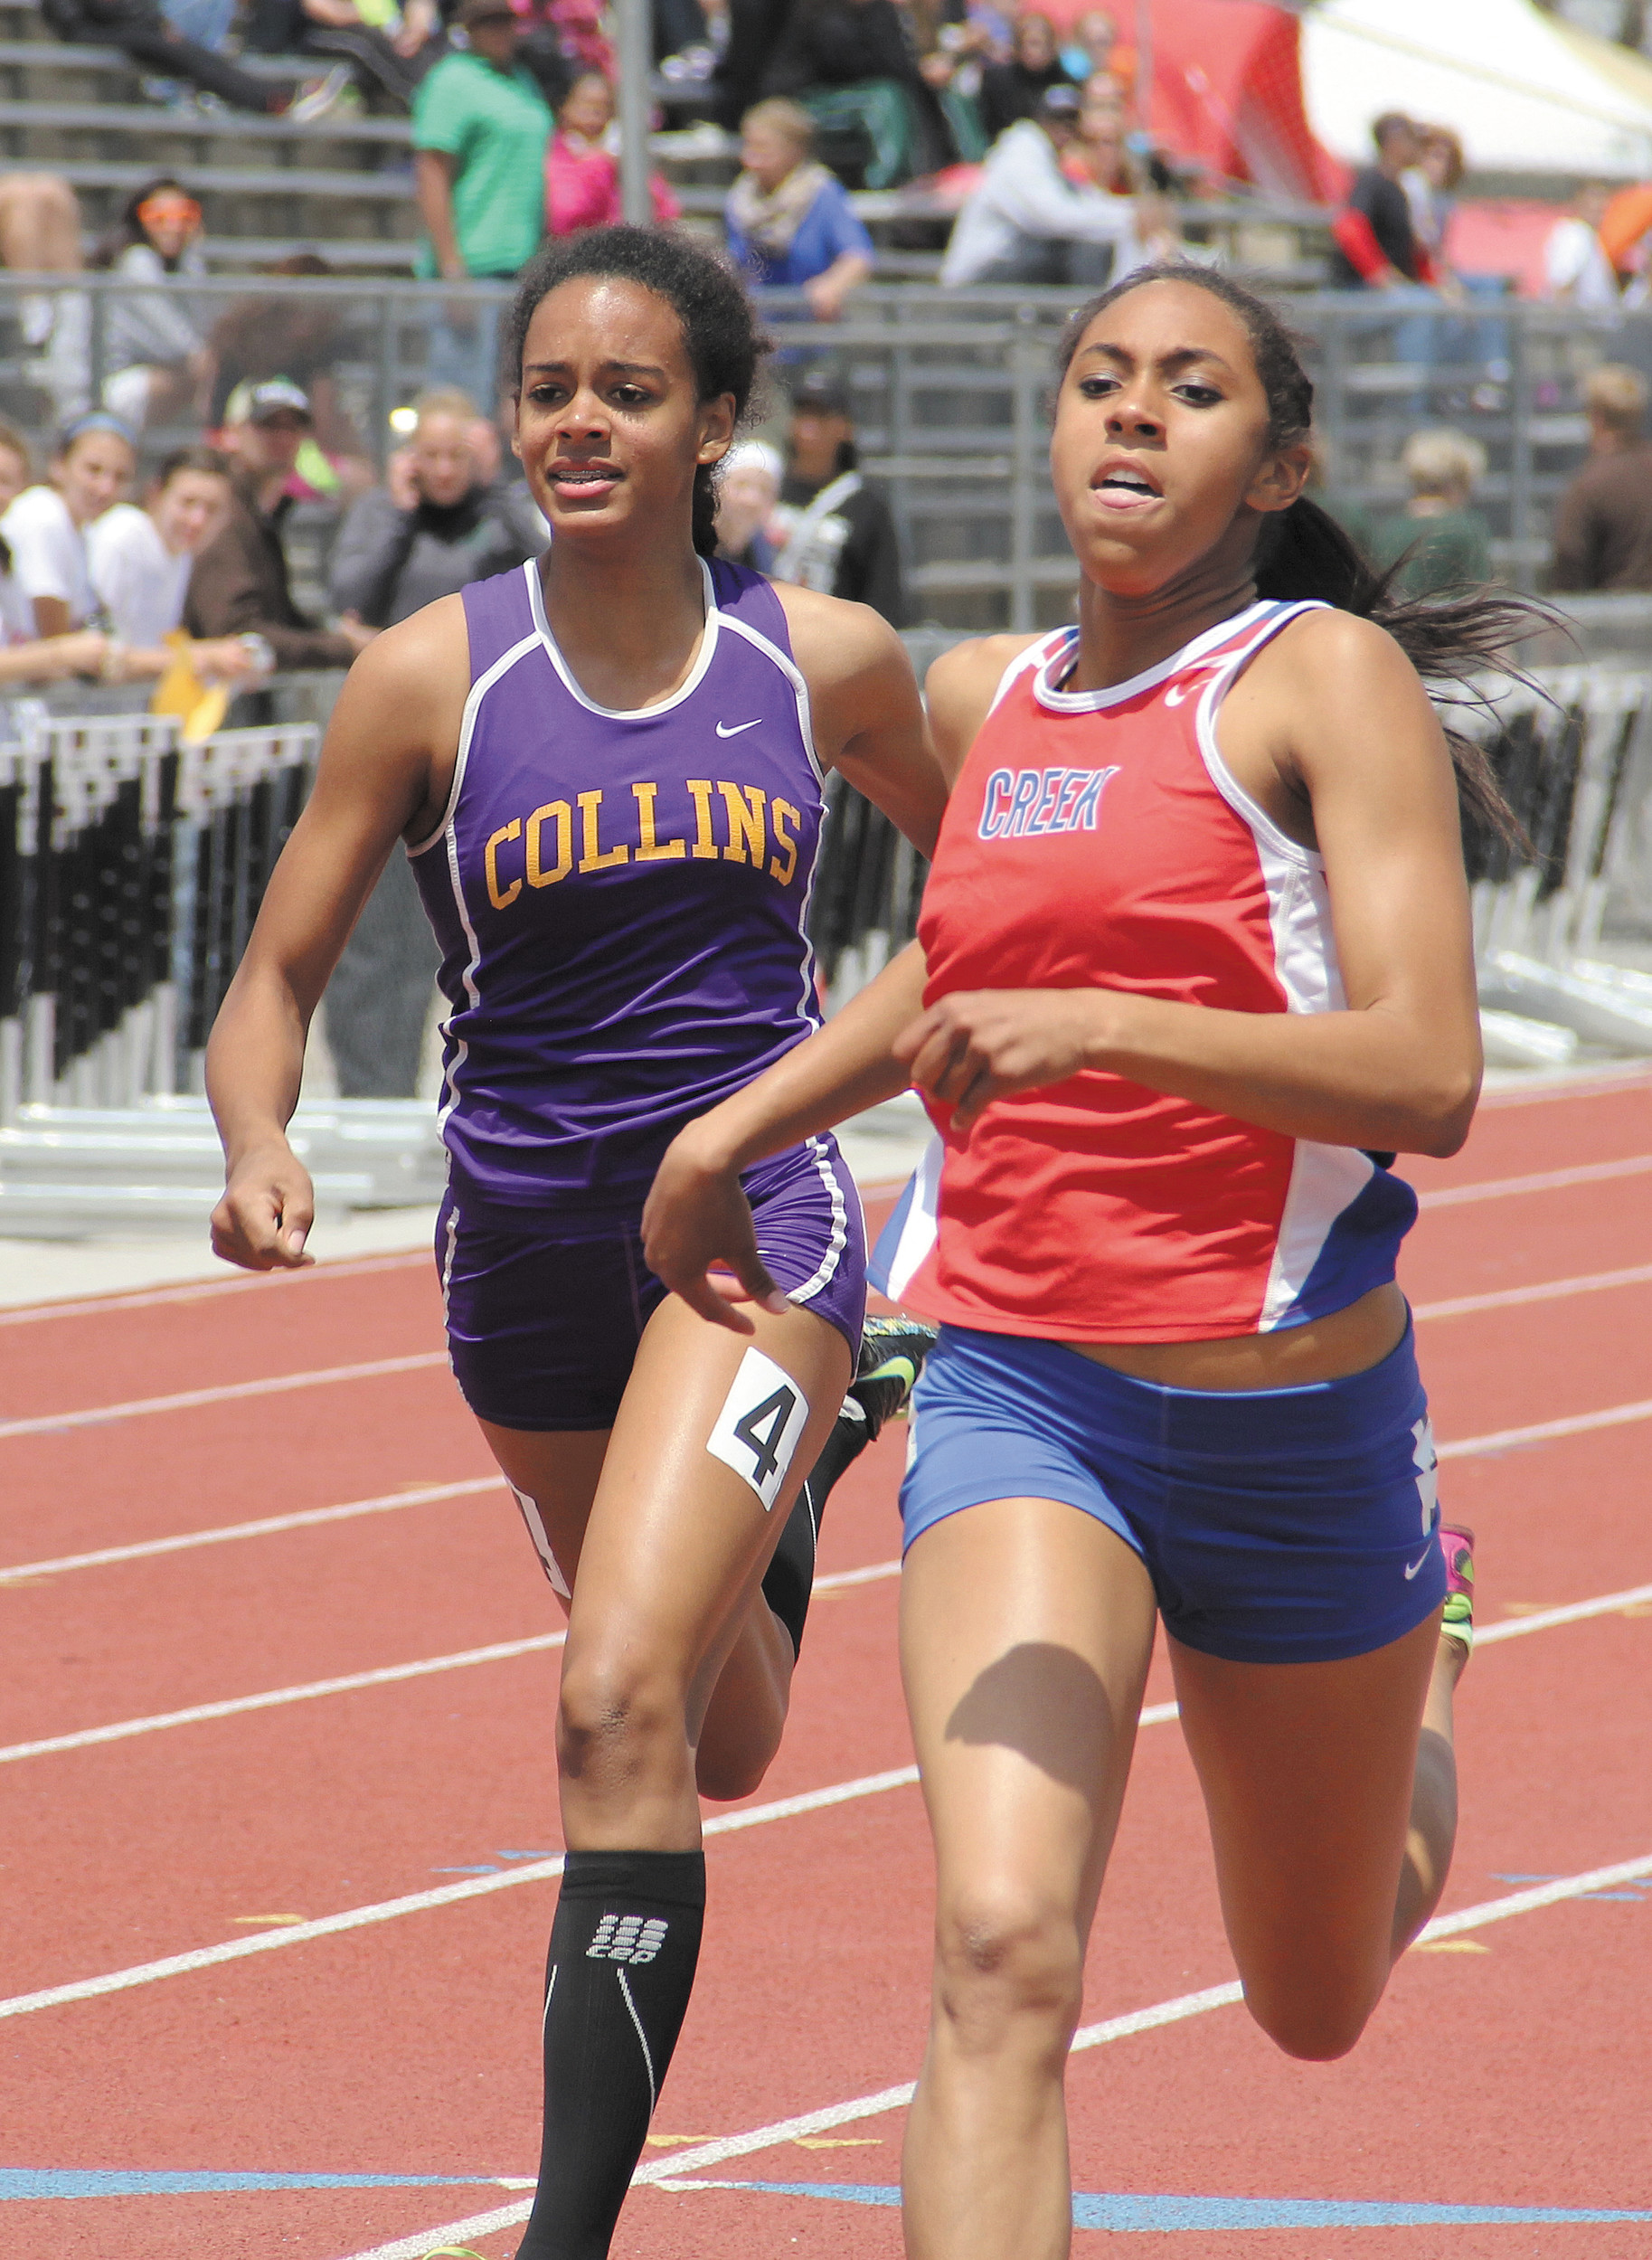 Cherry Creek sophomore Ashley Miller, right, finished just fast enough in the 200 meter prelims May 15 to make it to the 5A finals. Miller crossed in a time of 24.72 seconds, the ninth fastest among all preliminary heats.